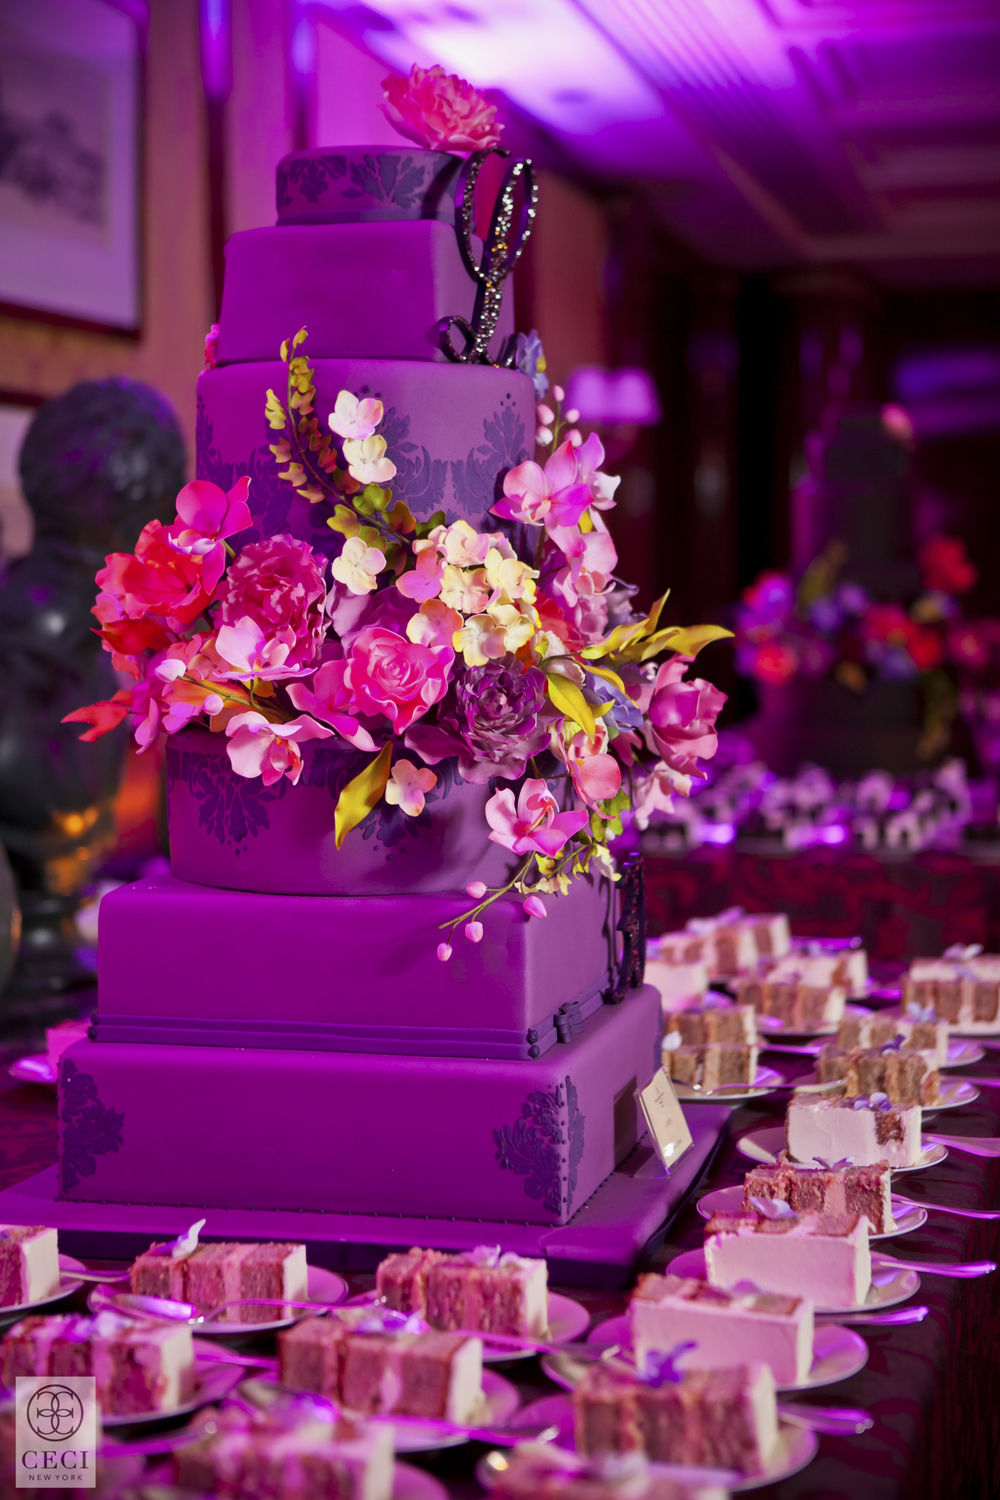 ceci_new_york_lucas_somoza_purple_regal_wediding_birthday_commitment_ceremony_gold-39.jpg